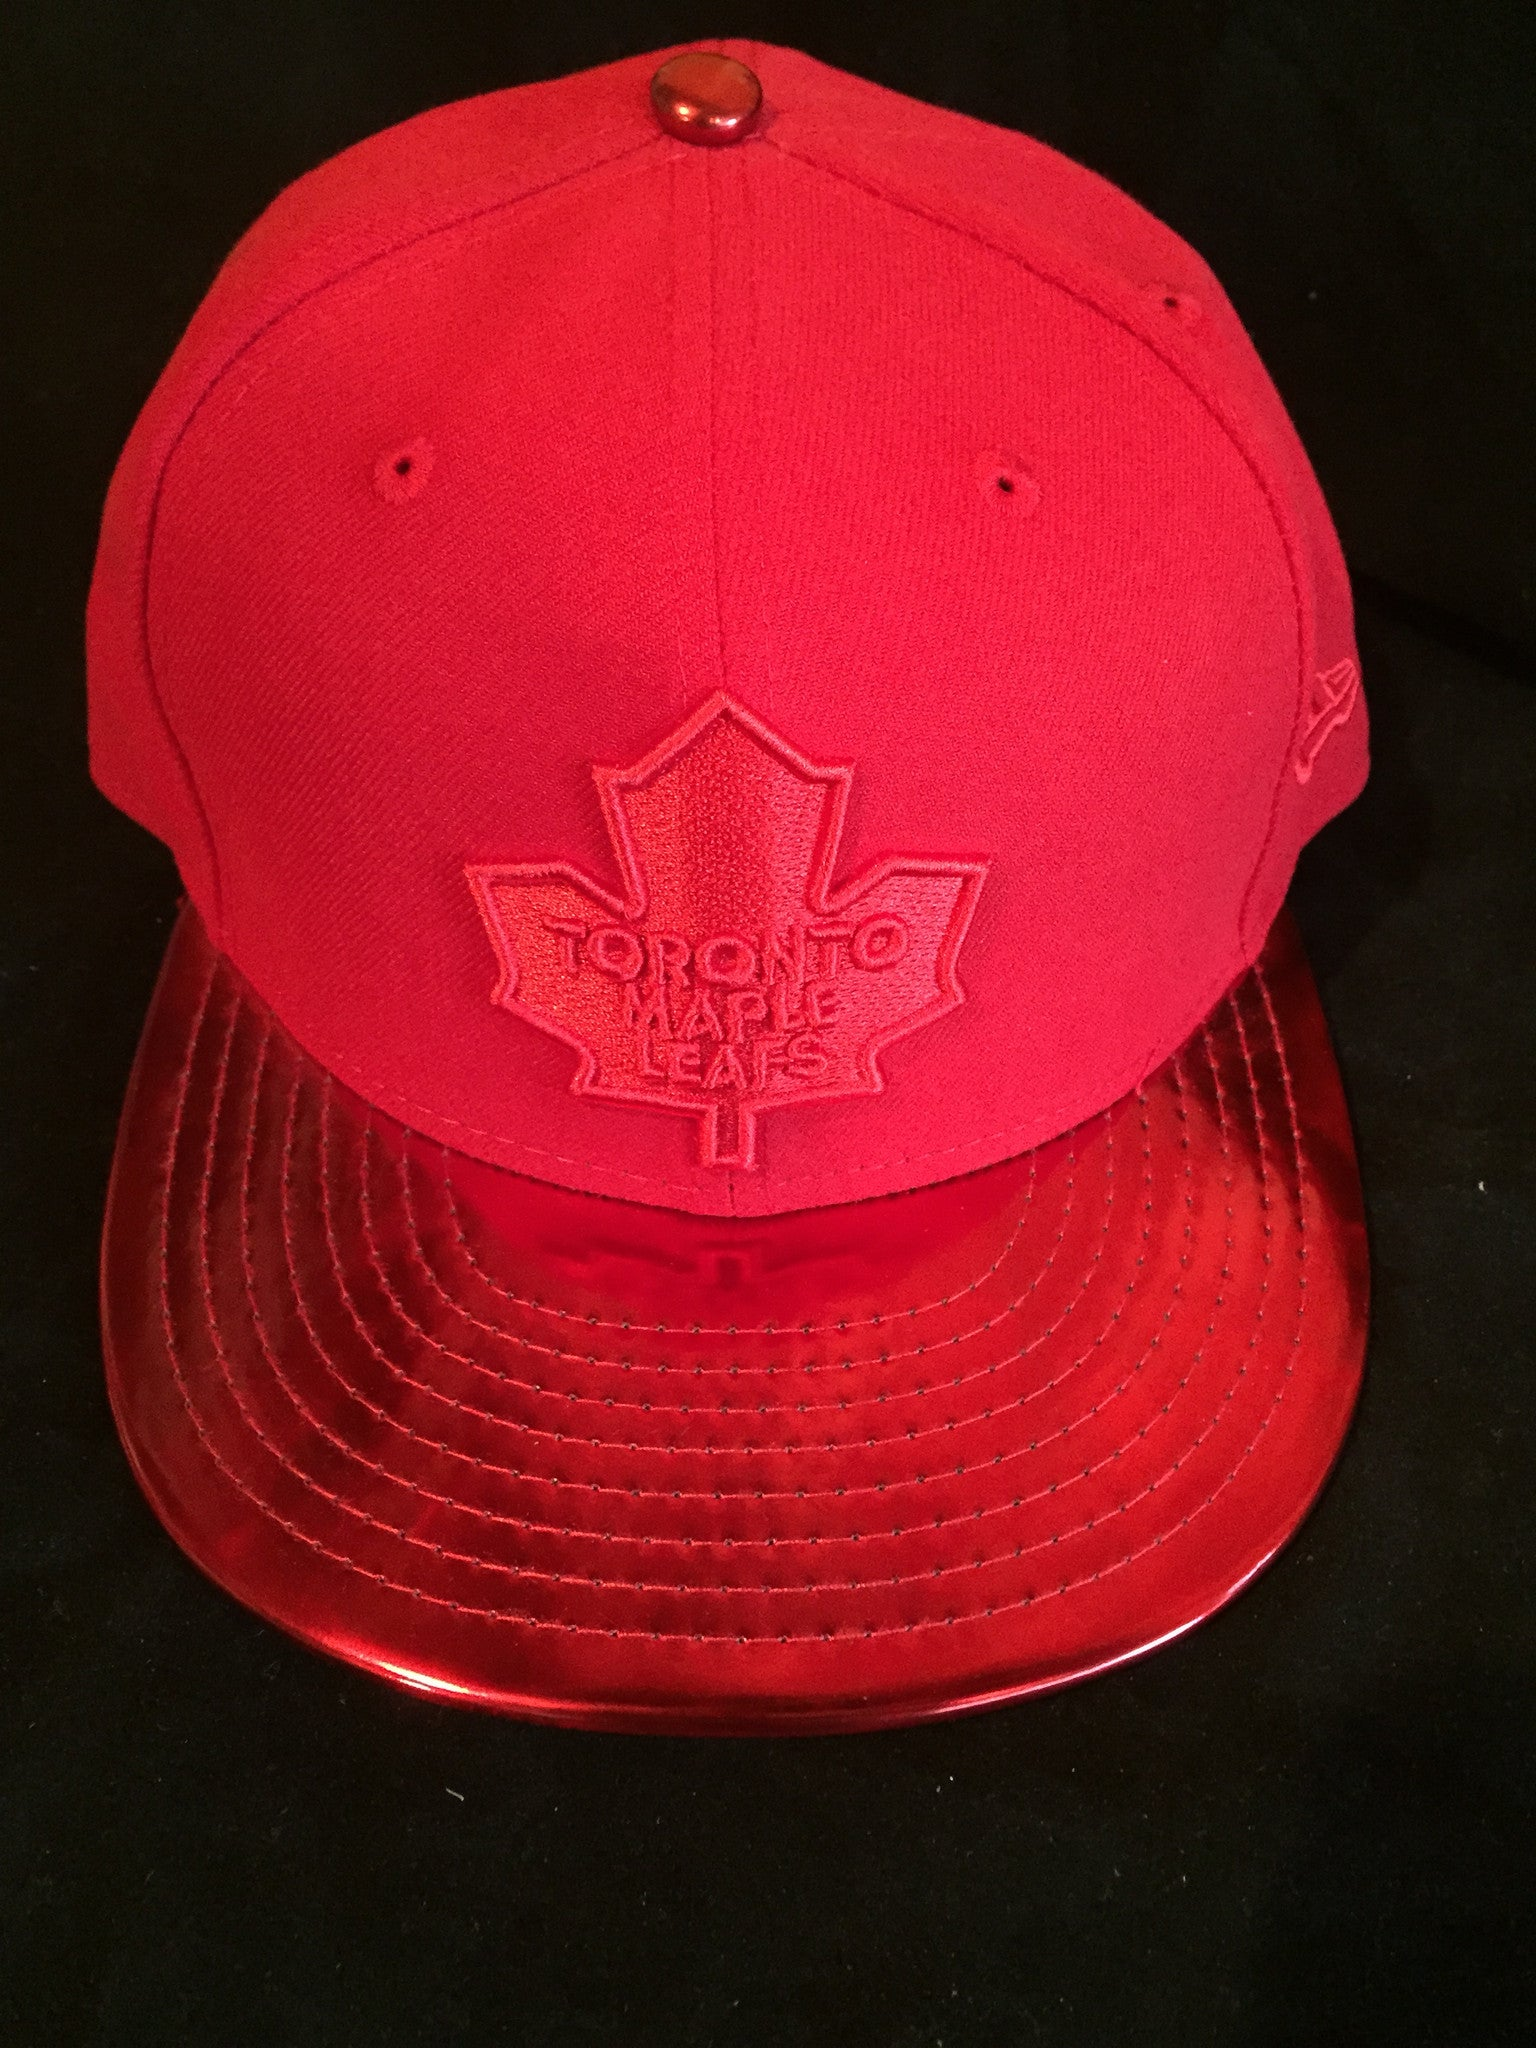 best website 91389 8db9f ... shop nhl toronto maple leafs meddled fitted hat 27851 b7531